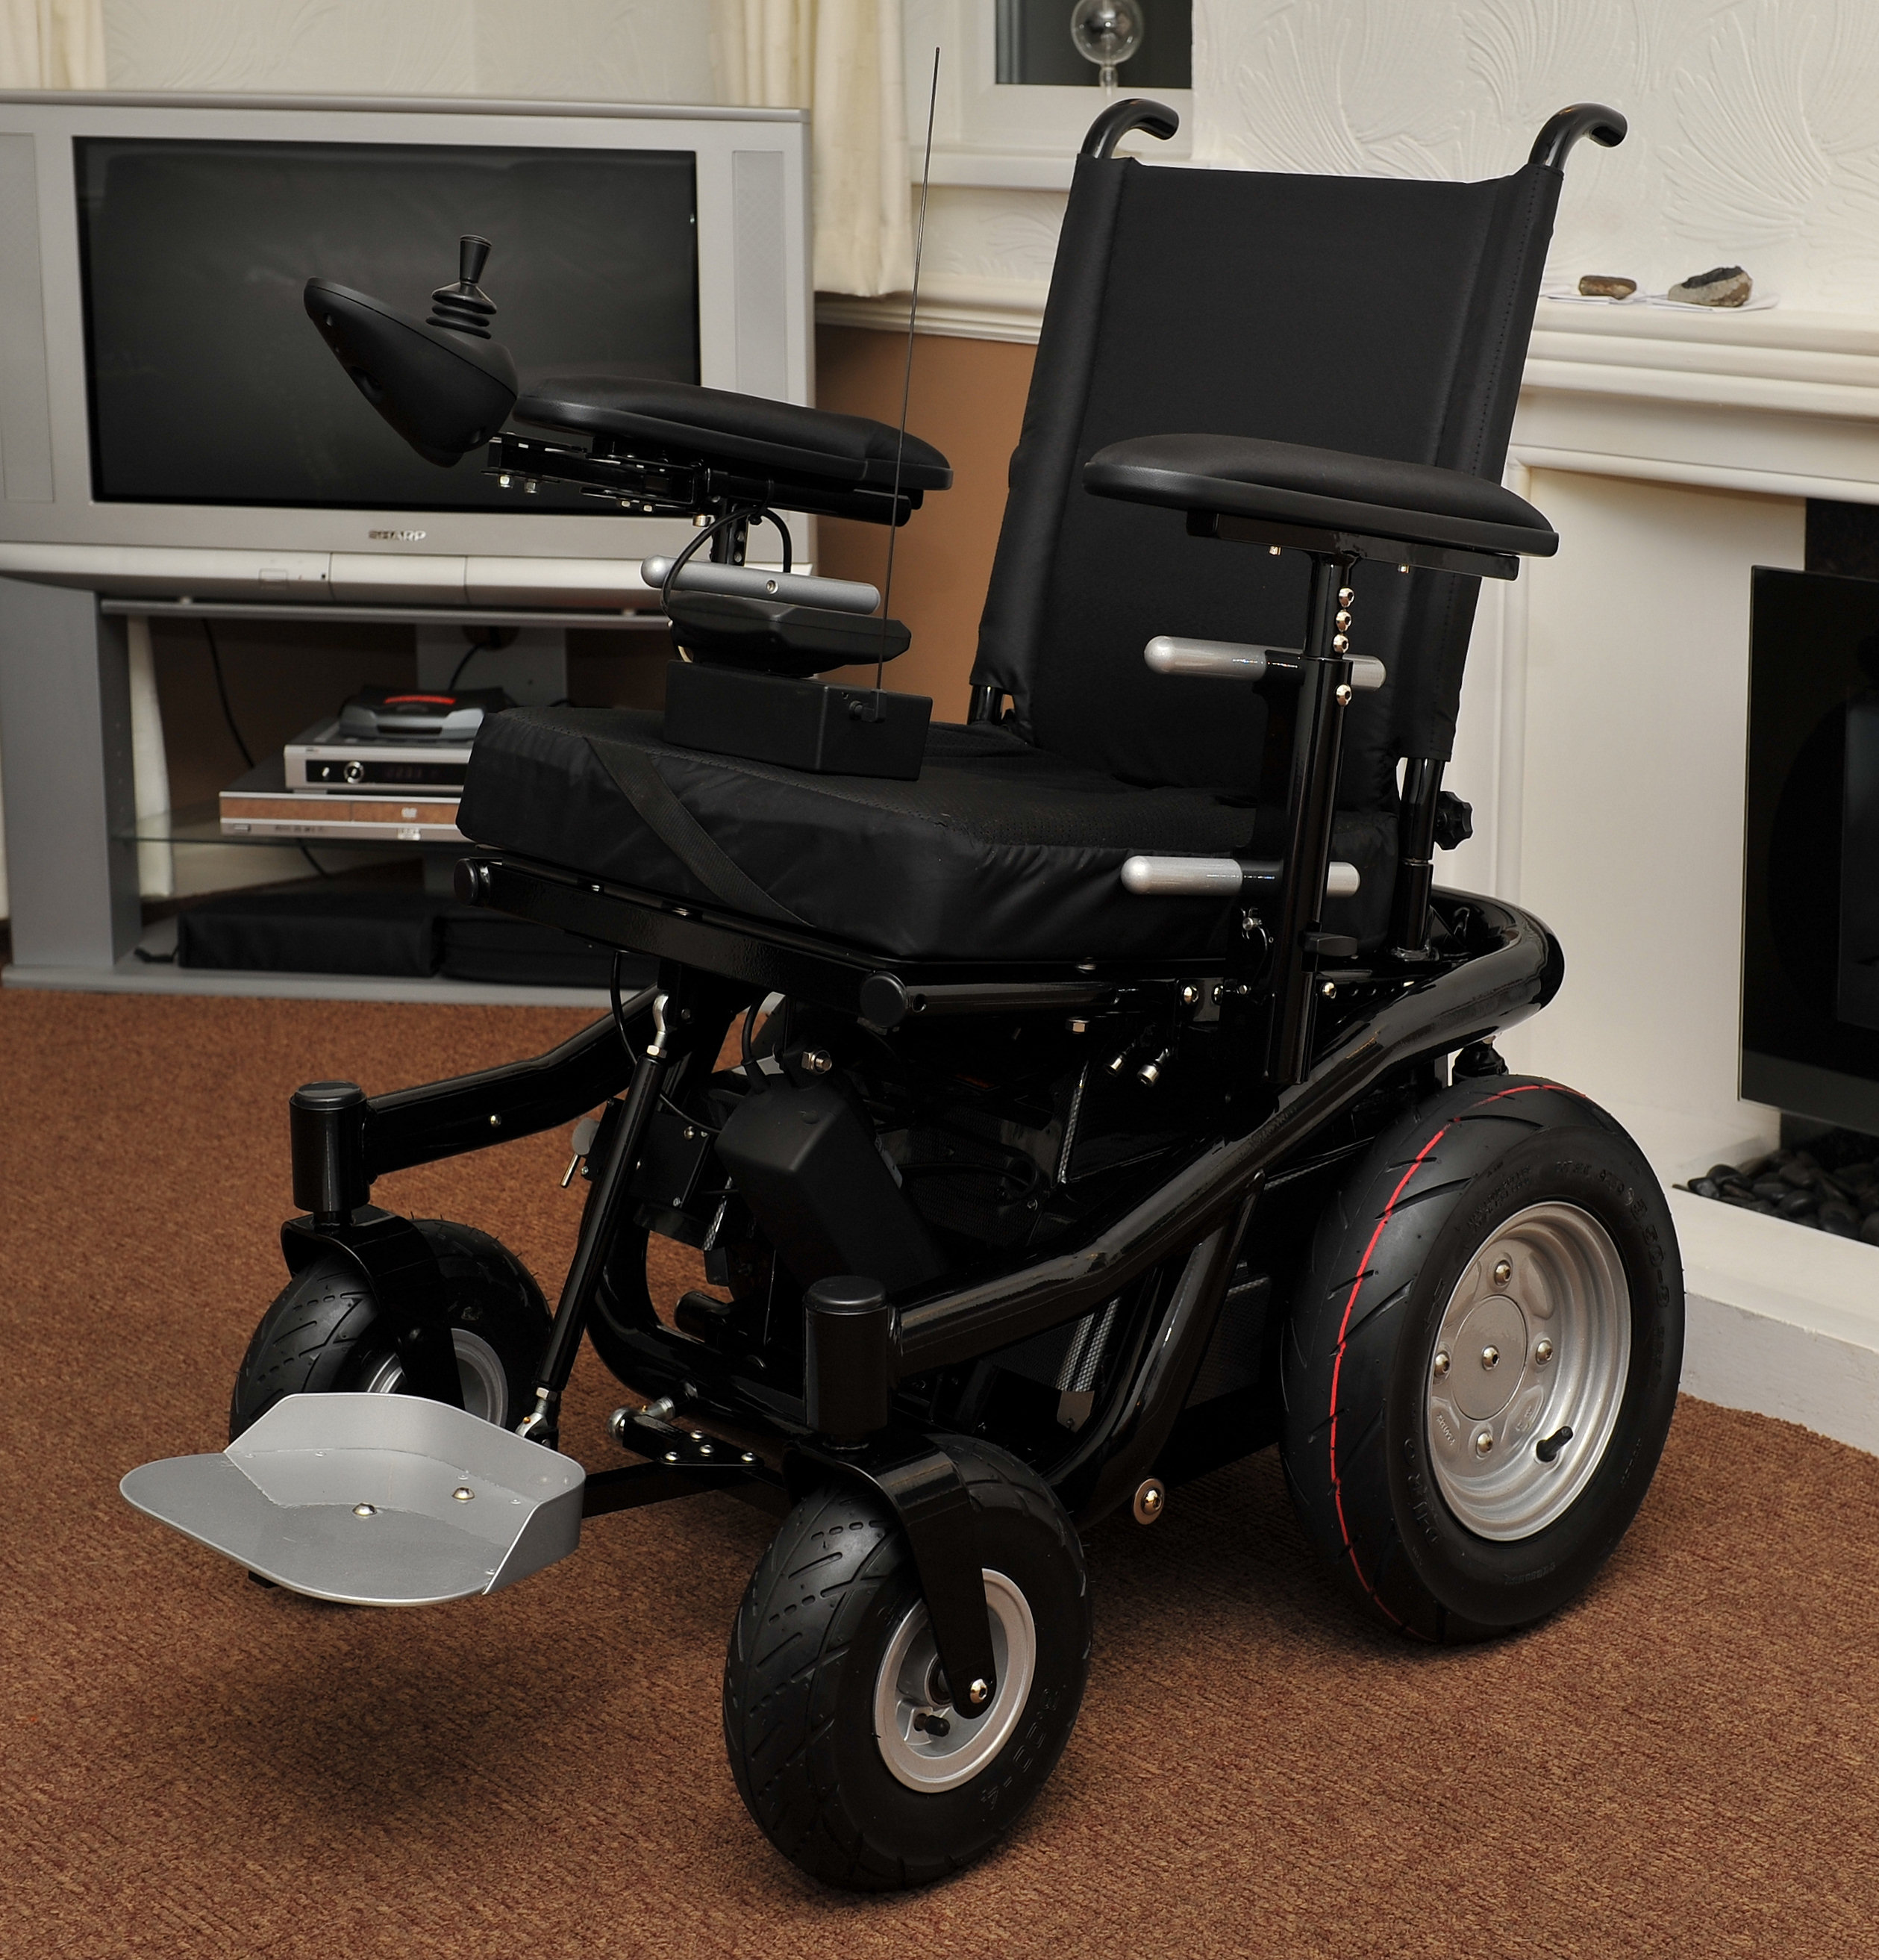 electric wheel chairs blue leather swivel recliner chair best of the power wheelchairs in india 2018 tech all one